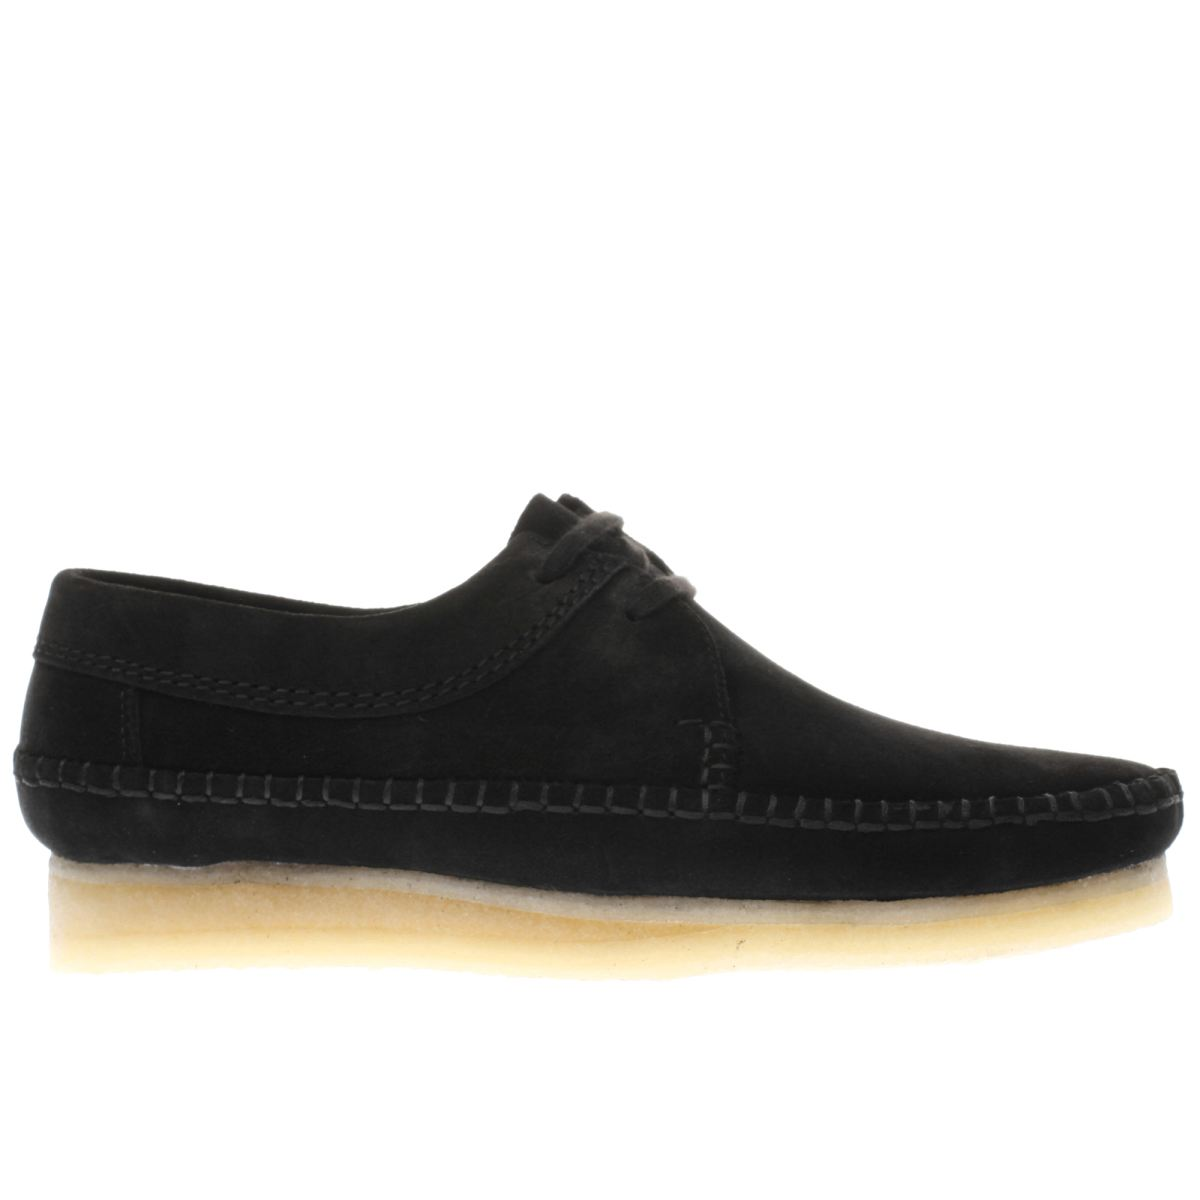 clarks originals black weaver shoes